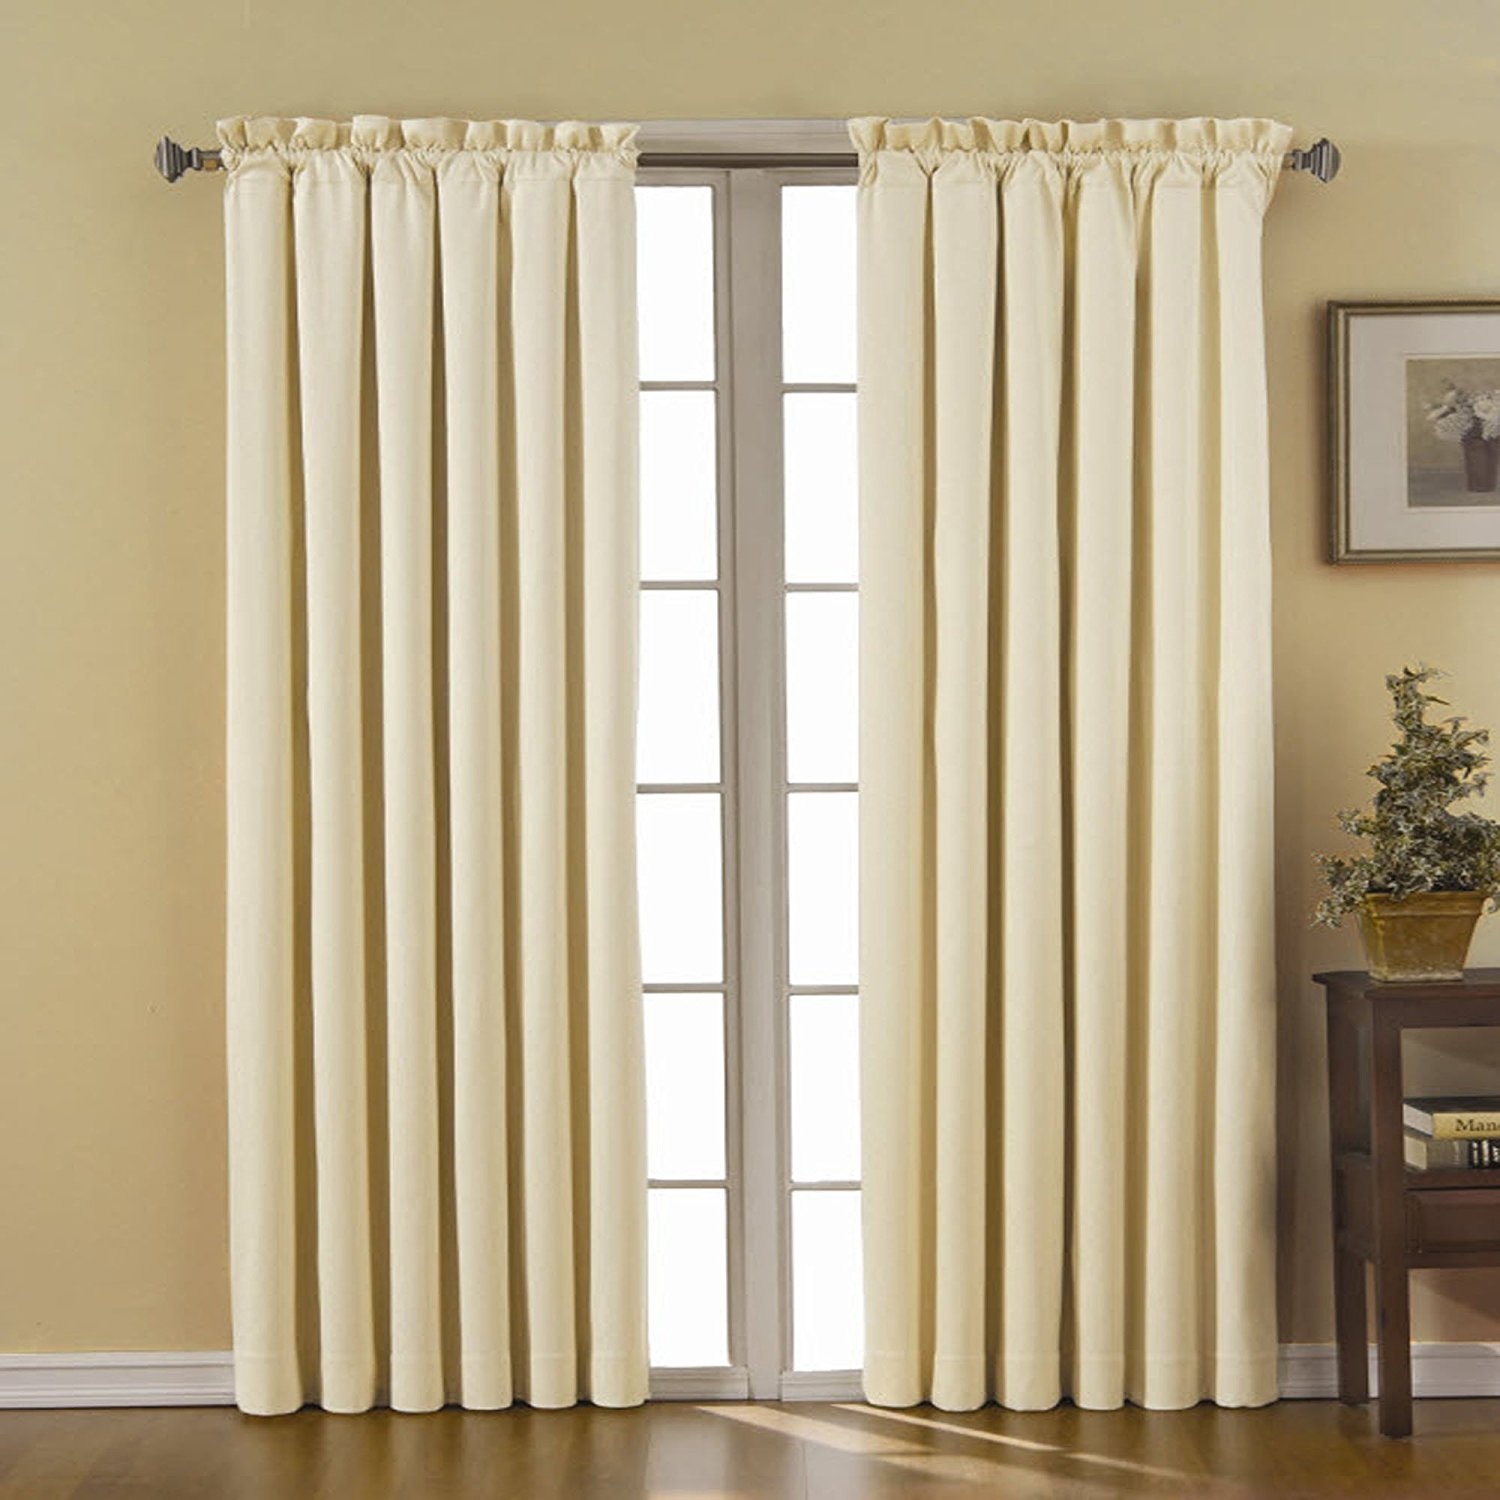 Details About Eclipse Canova 42 Inch84 Inch Thermaback Blackout Panel, Ivory , New, Free S Within Thermaback Blackout Window Curtains (View 3 of 30)